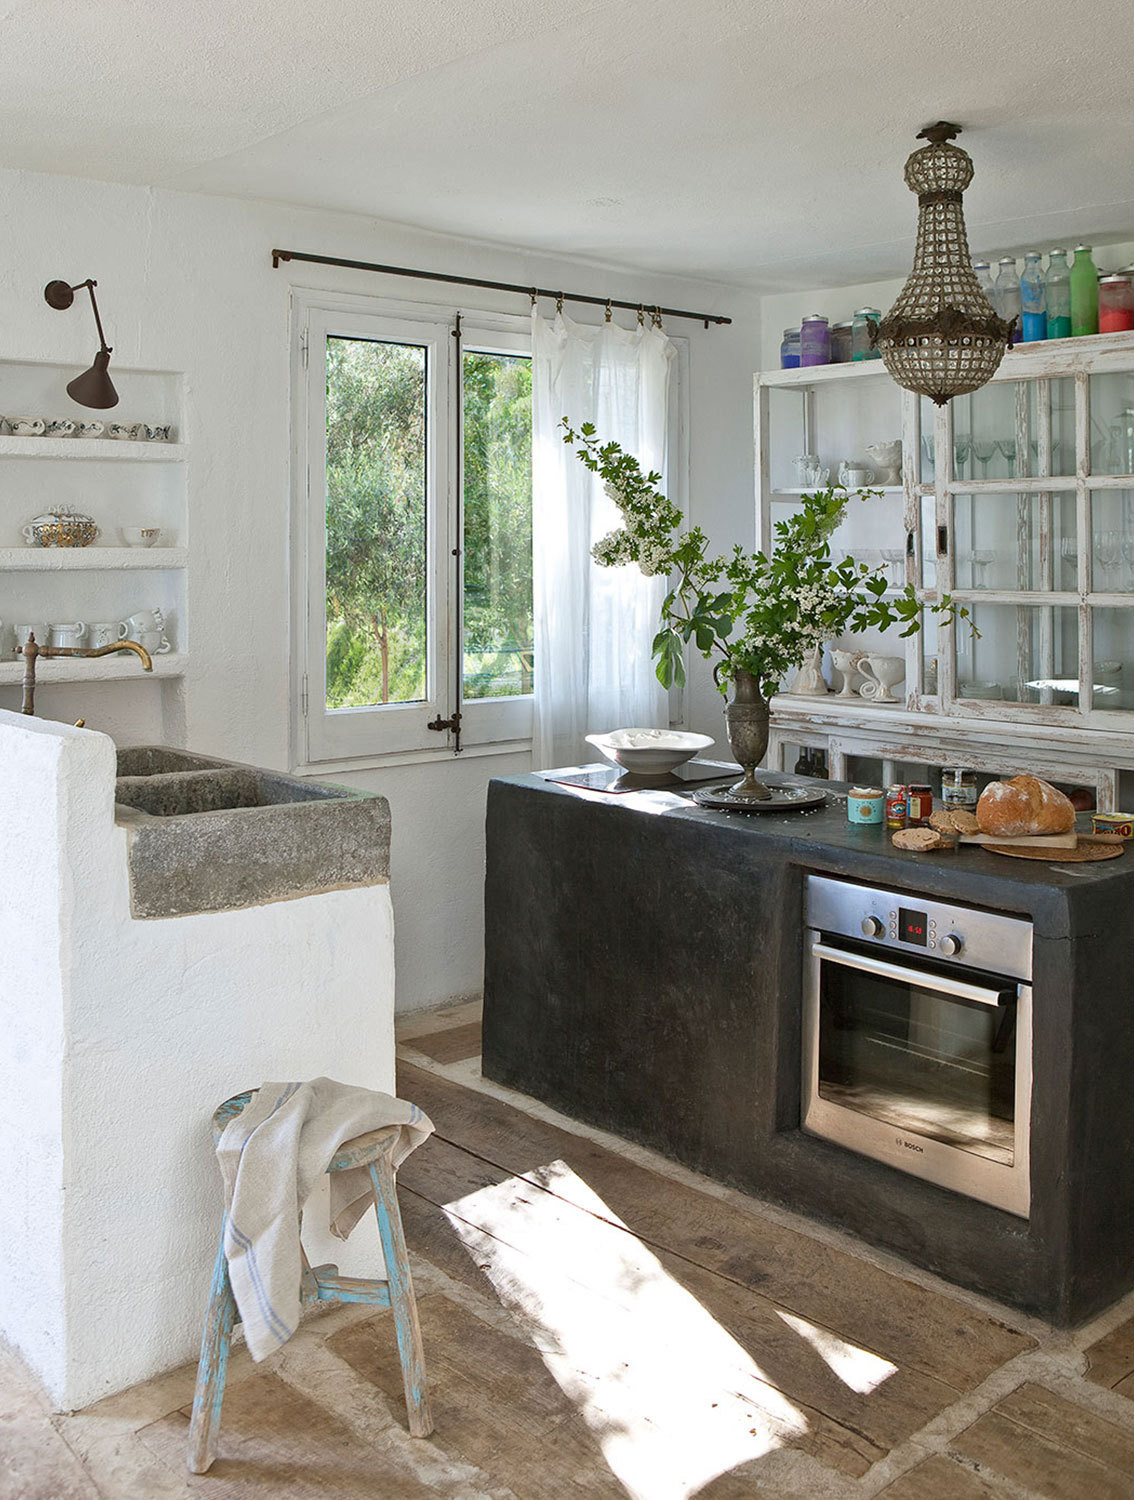 Modern conveniences and rustic concrete forms come together in the kitchen.